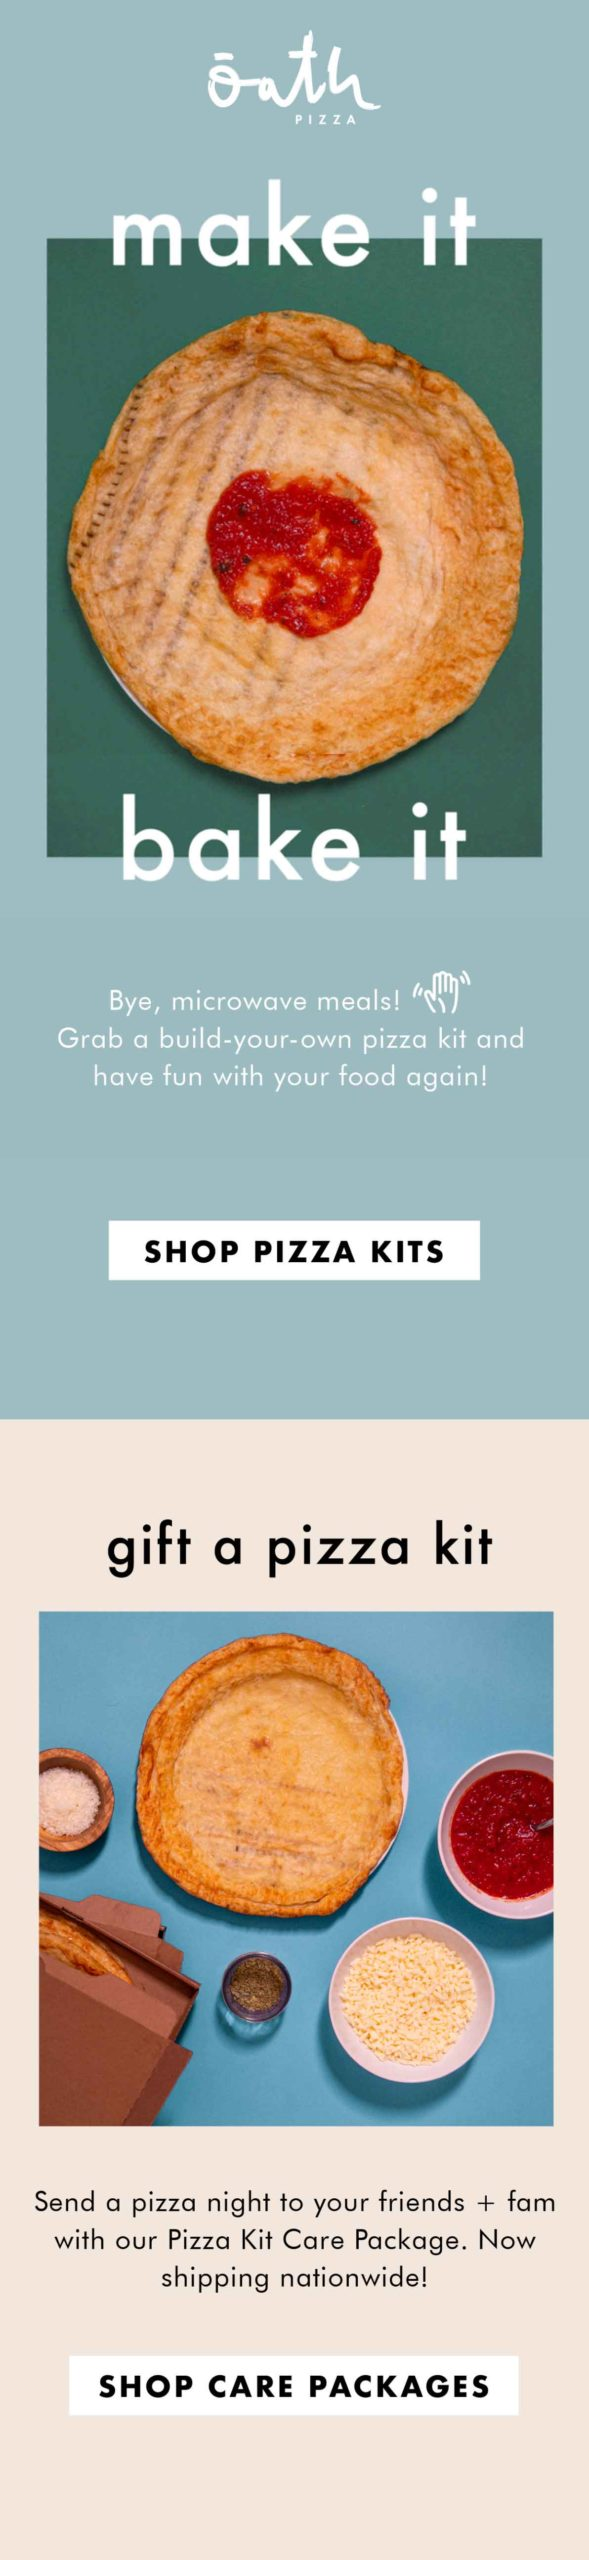 Oath Pizza: Pizza Kits Email